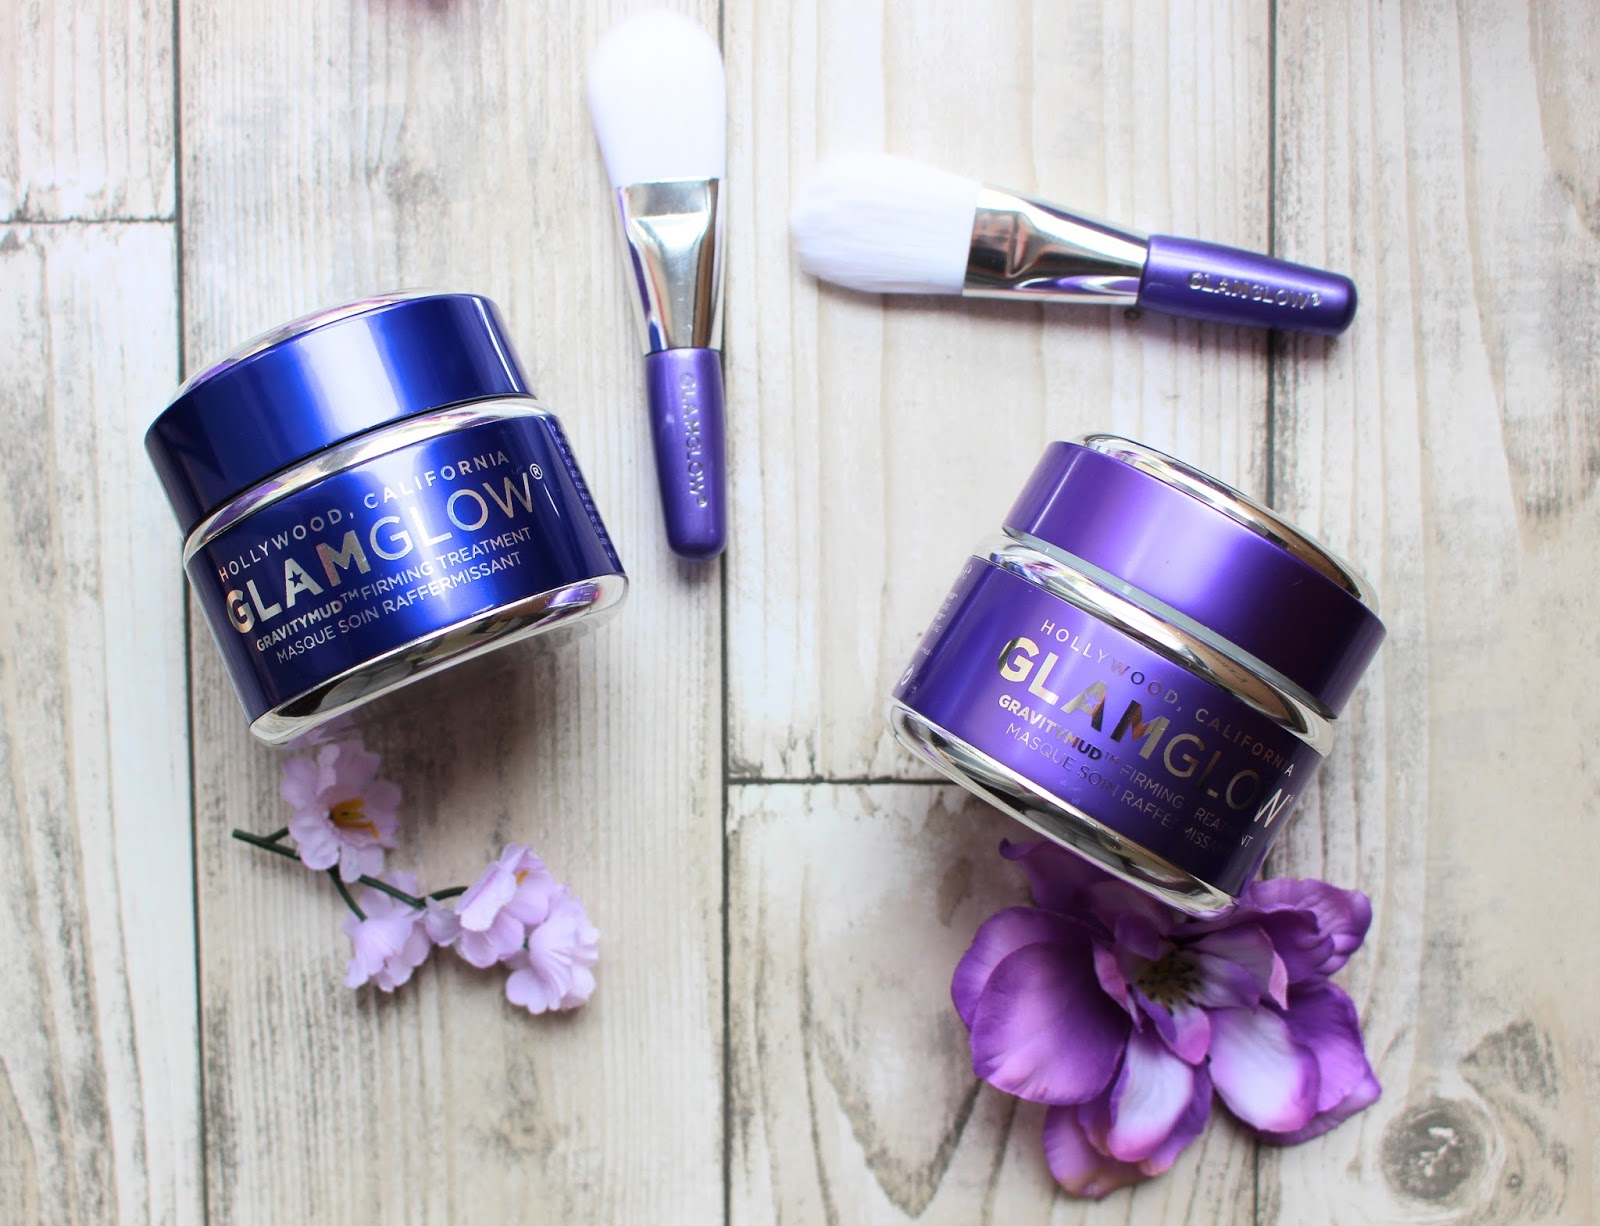 Glamglow gravity mud firming face mask review